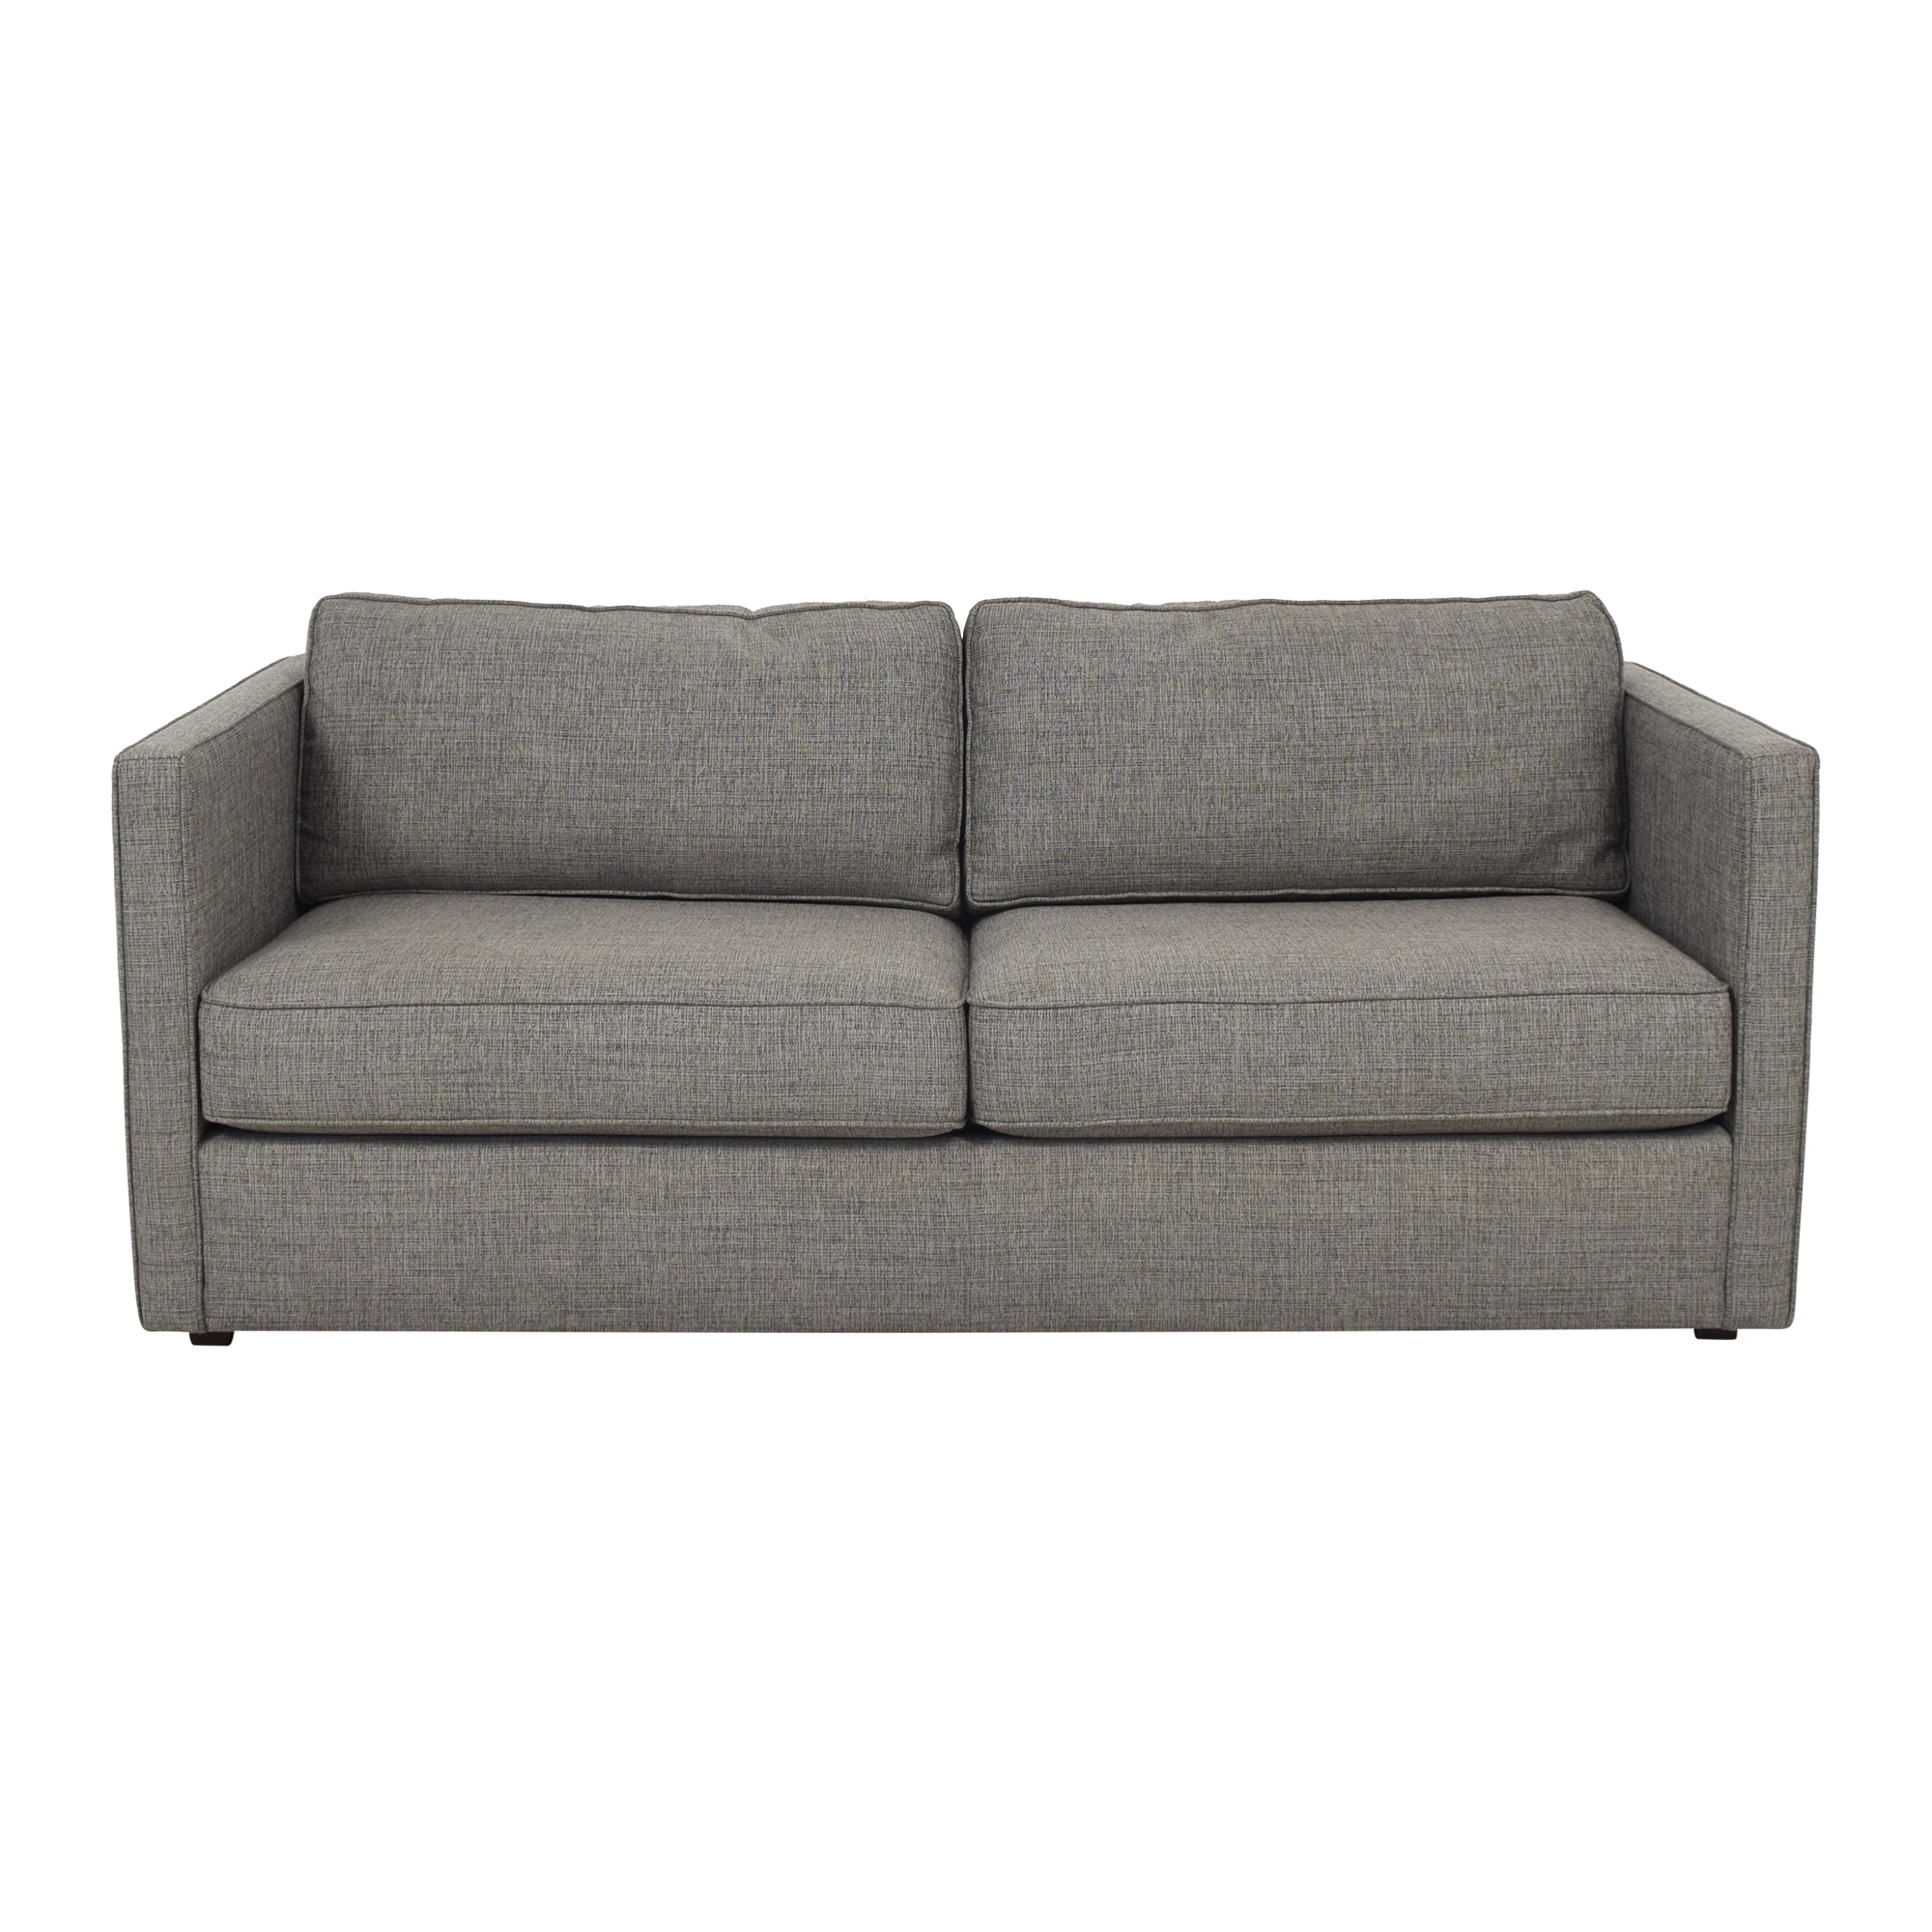 shop Room & Board Room & Board Watson Guest Select Sleeper Sofa online